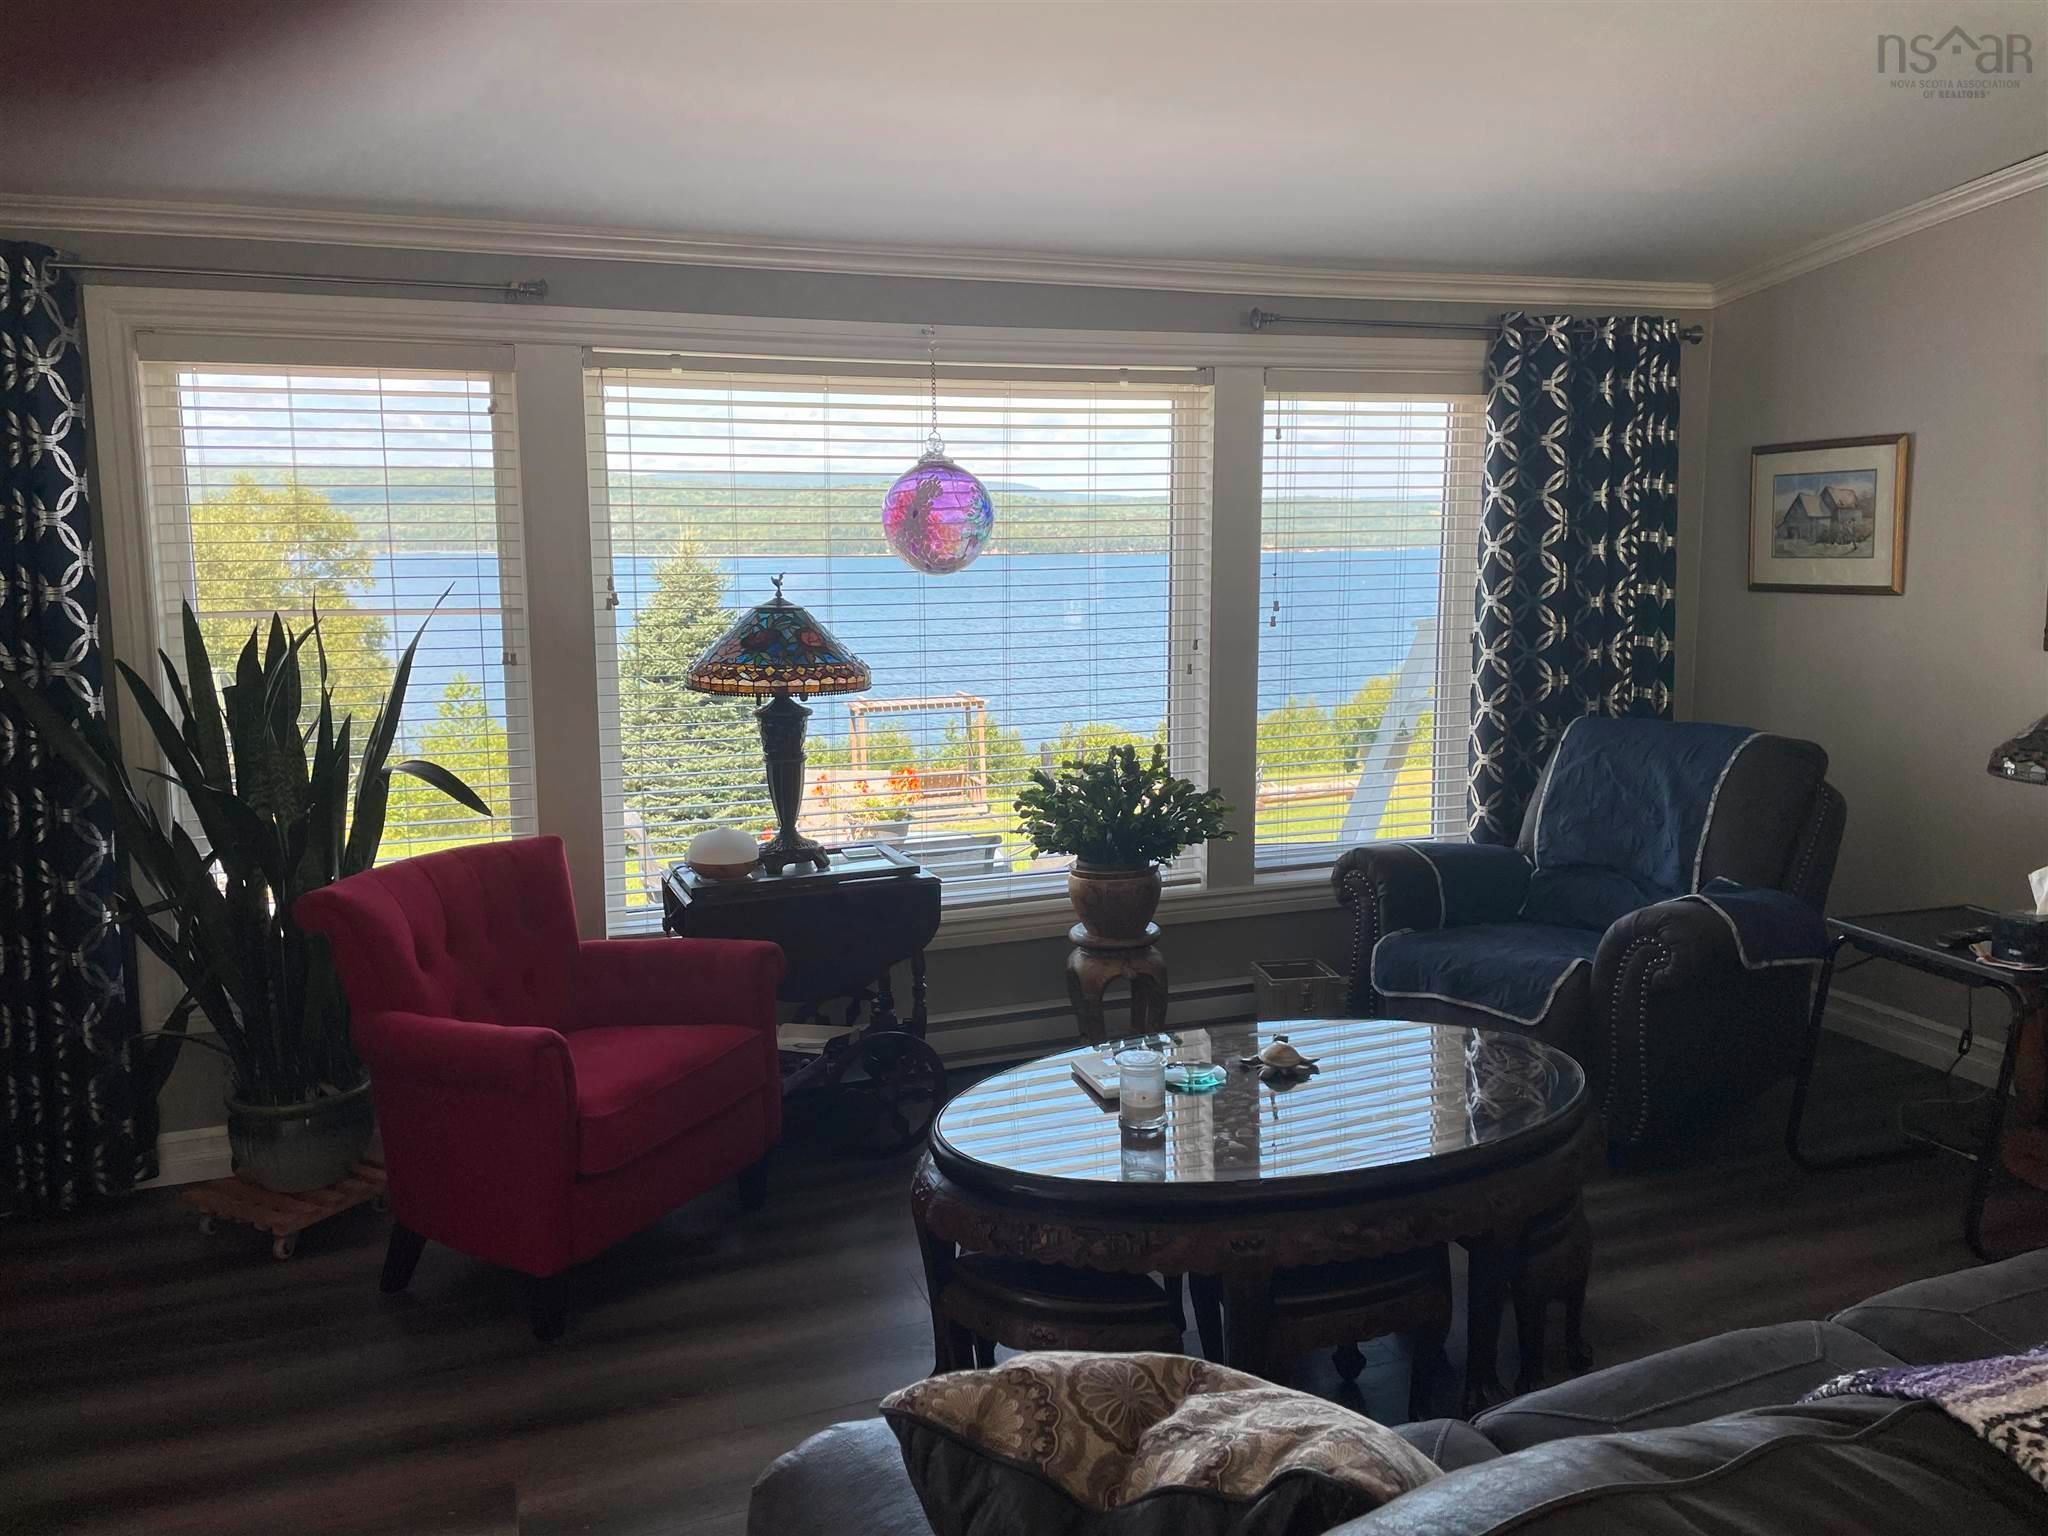 Photo 15: Photos: 3836 Highway 105 in South Haven: 209-Victoria County / Baddeck Residential for sale (Cape Breton)  : MLS®# 202120821